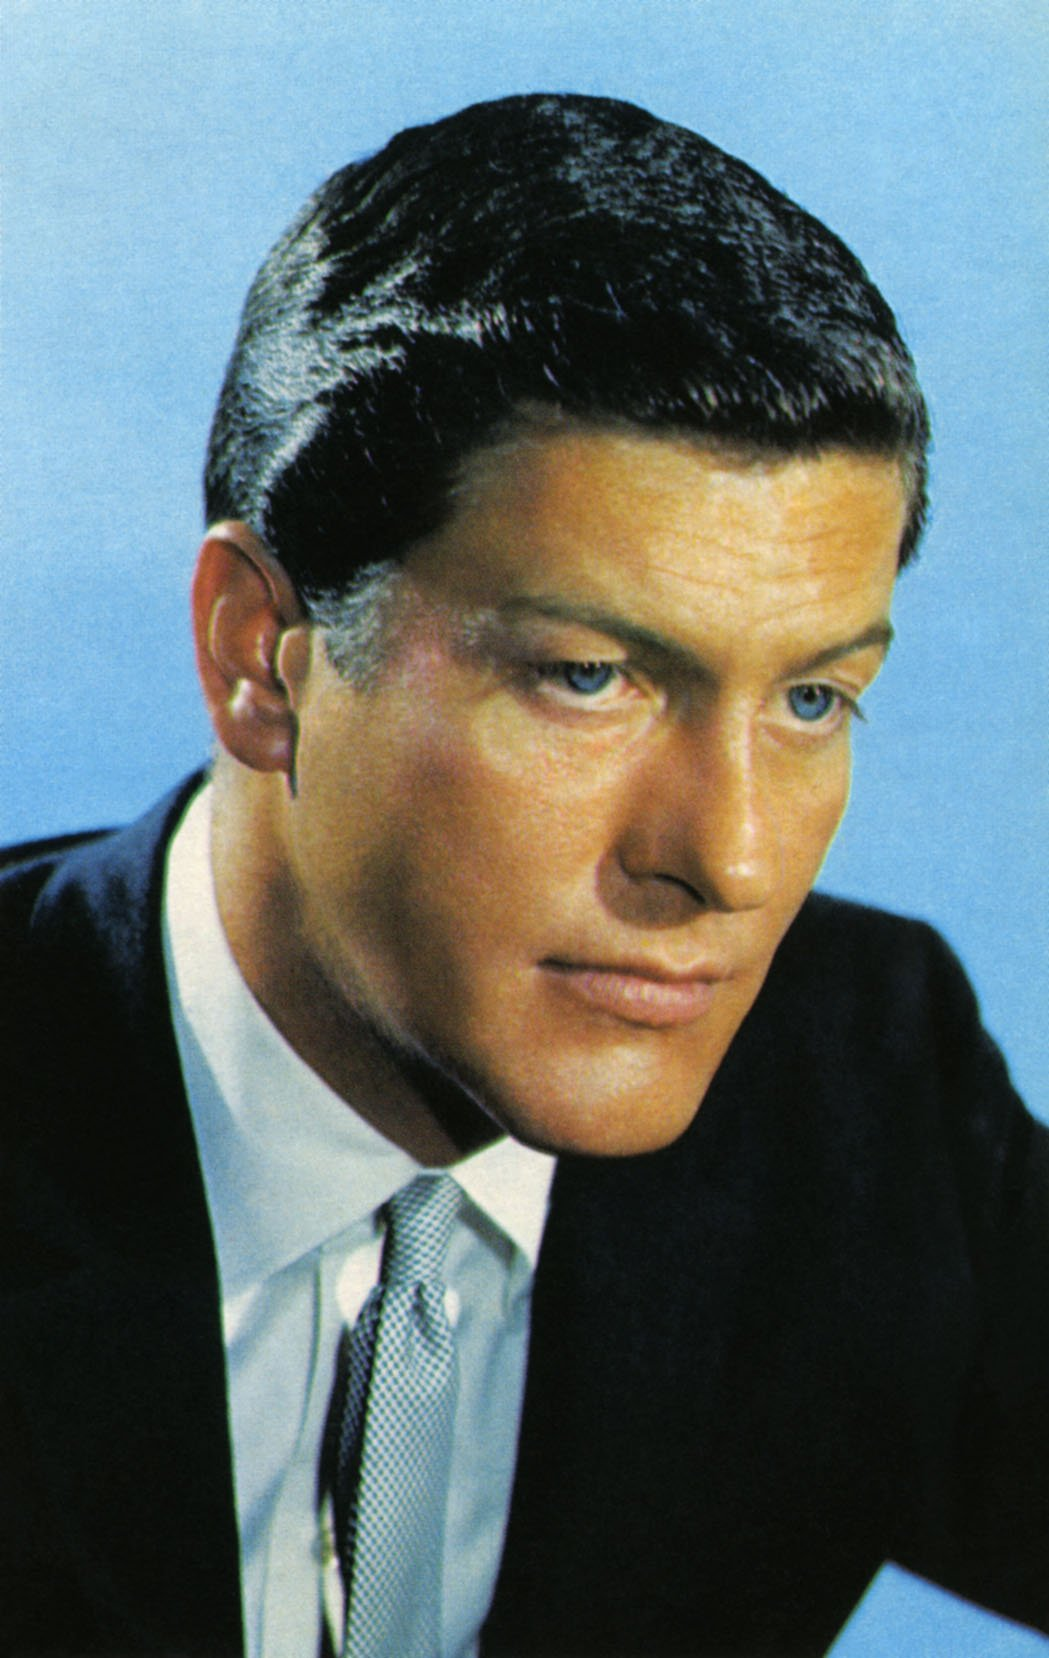 Dick Van Dyke is an actor, comedian, dancer, and singer | Photo: Getty Images